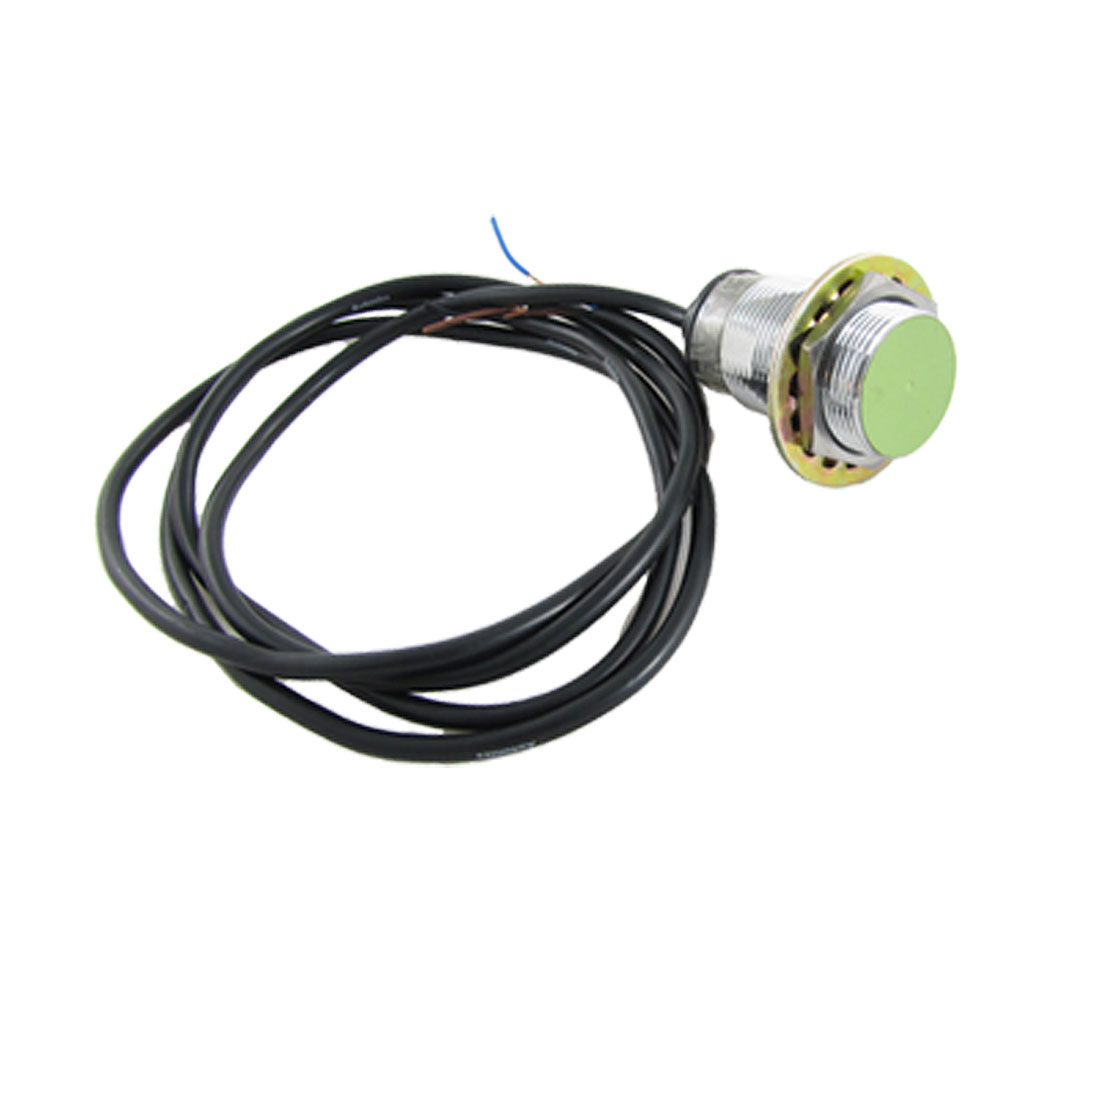 DC 12-24V NPN NO 3-wire 10mm Inductive Proximity Sensor Approach Switch PR30-10DN